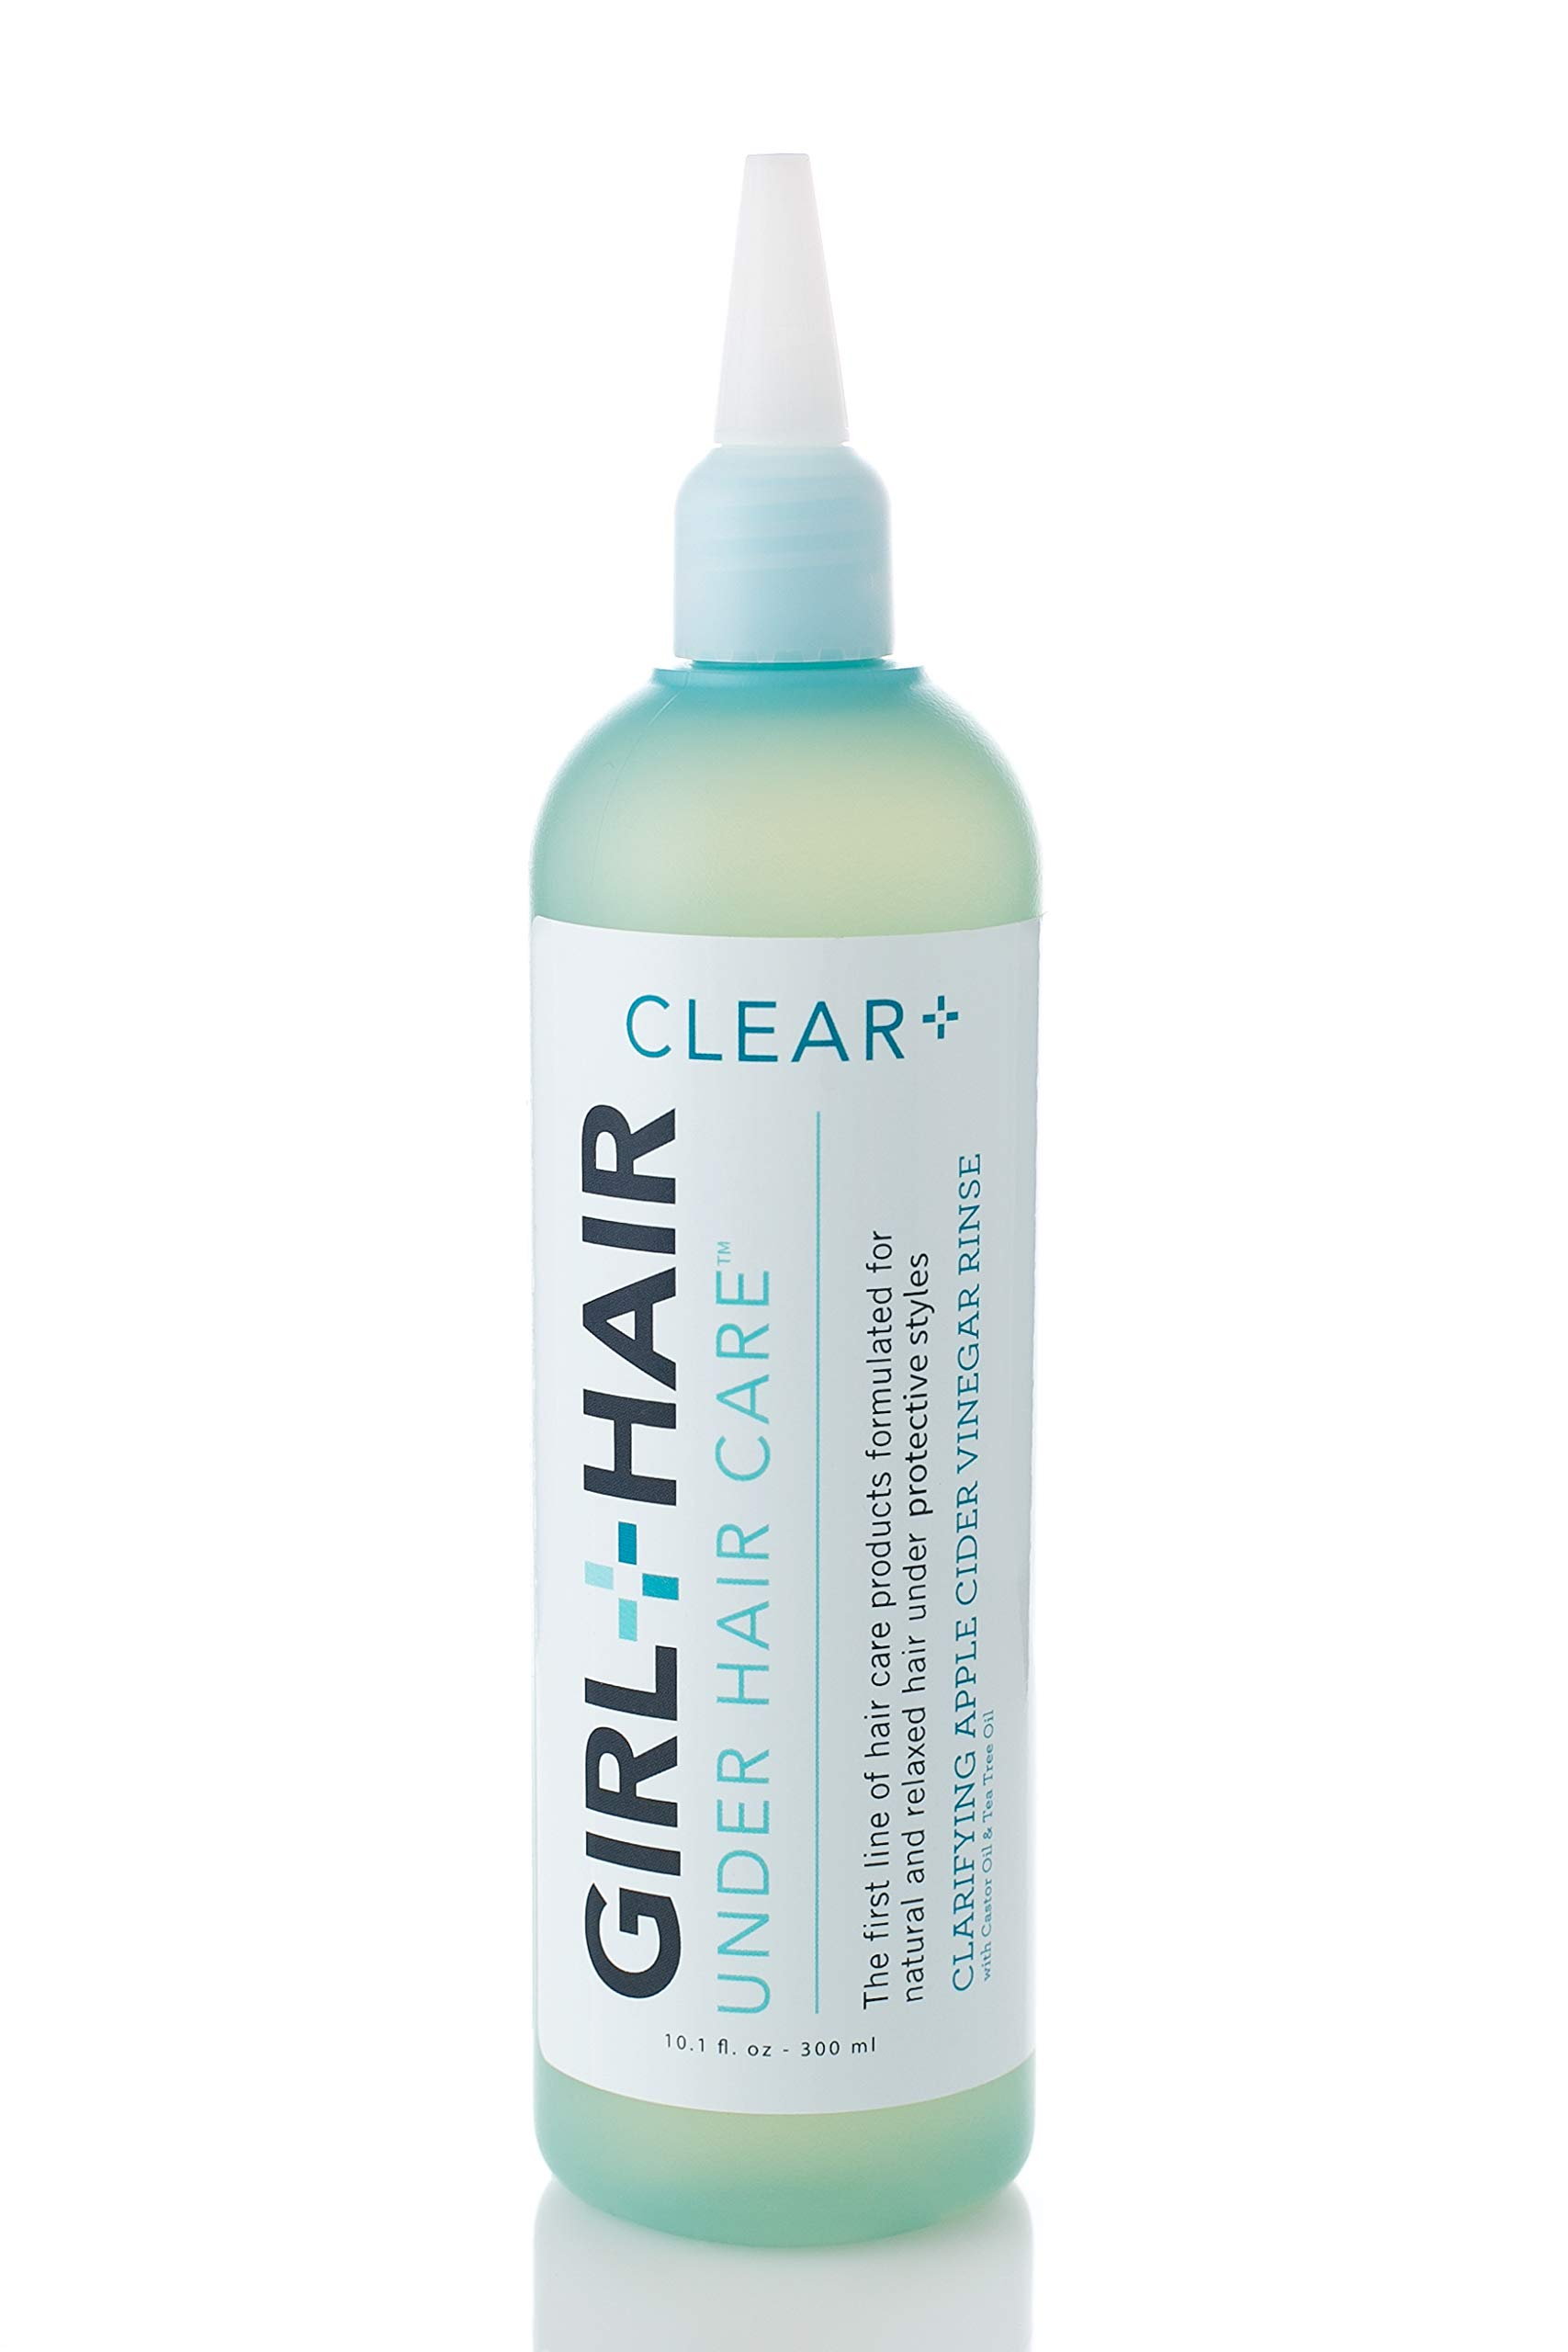 Girl+Hair Natural Hair Products, Clear Plus Apple Cider Vinegar Clarifying Hair Rinse, with ACV & Rice Water, 10.1 fl.oz./300 ml by GIRL+HAIR